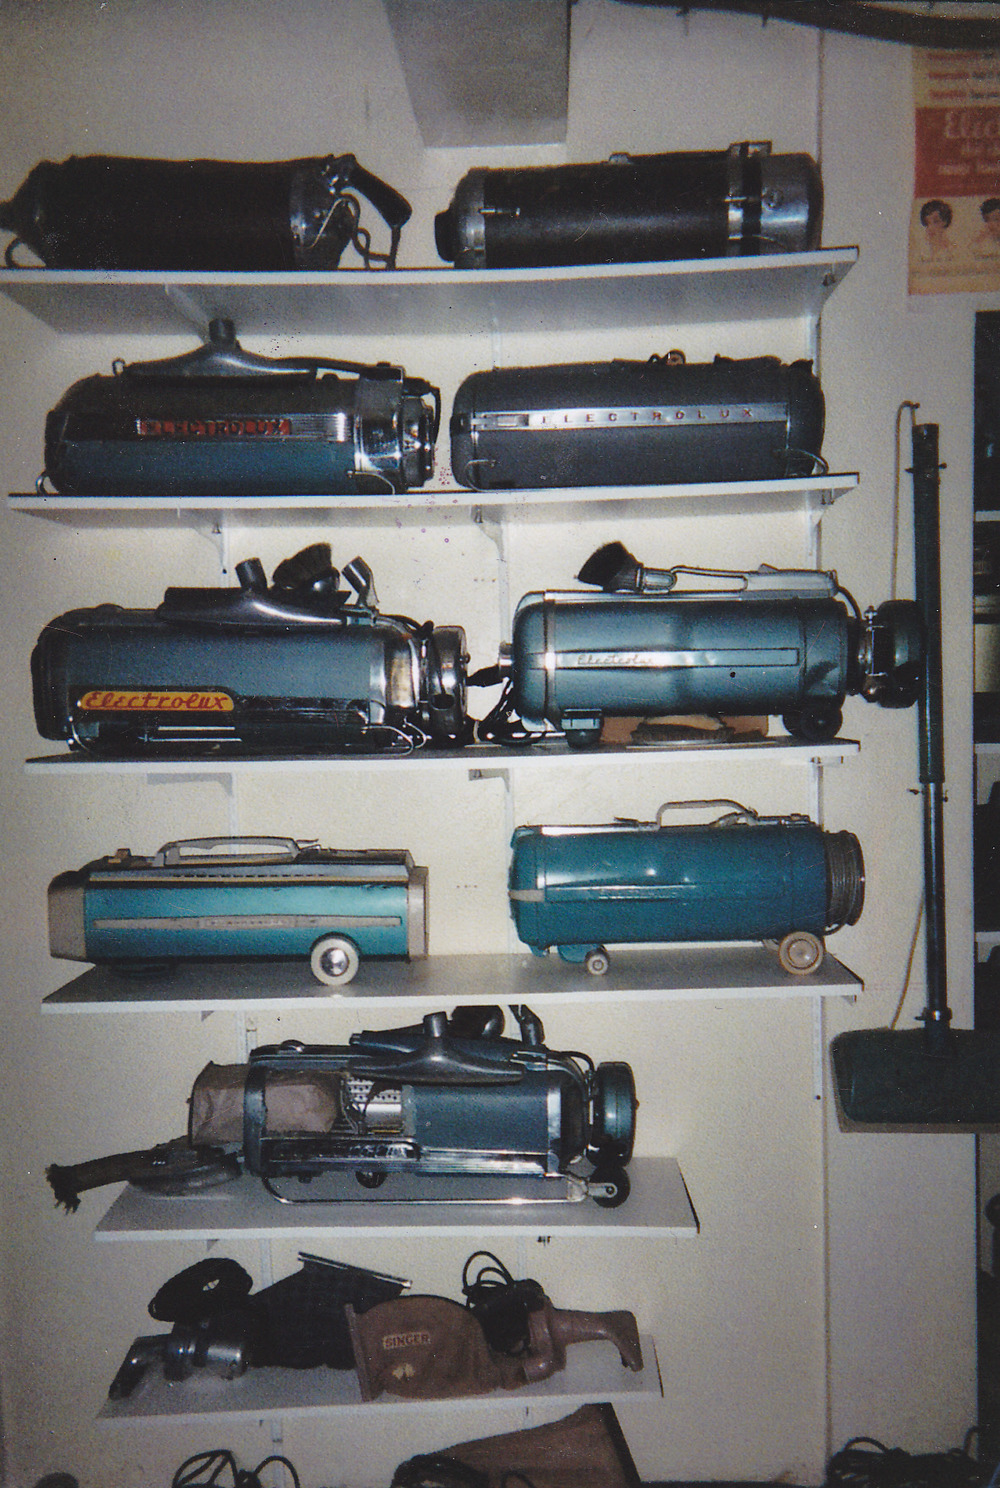 Electrolux Canister Vacs And Memorabilia For Sale